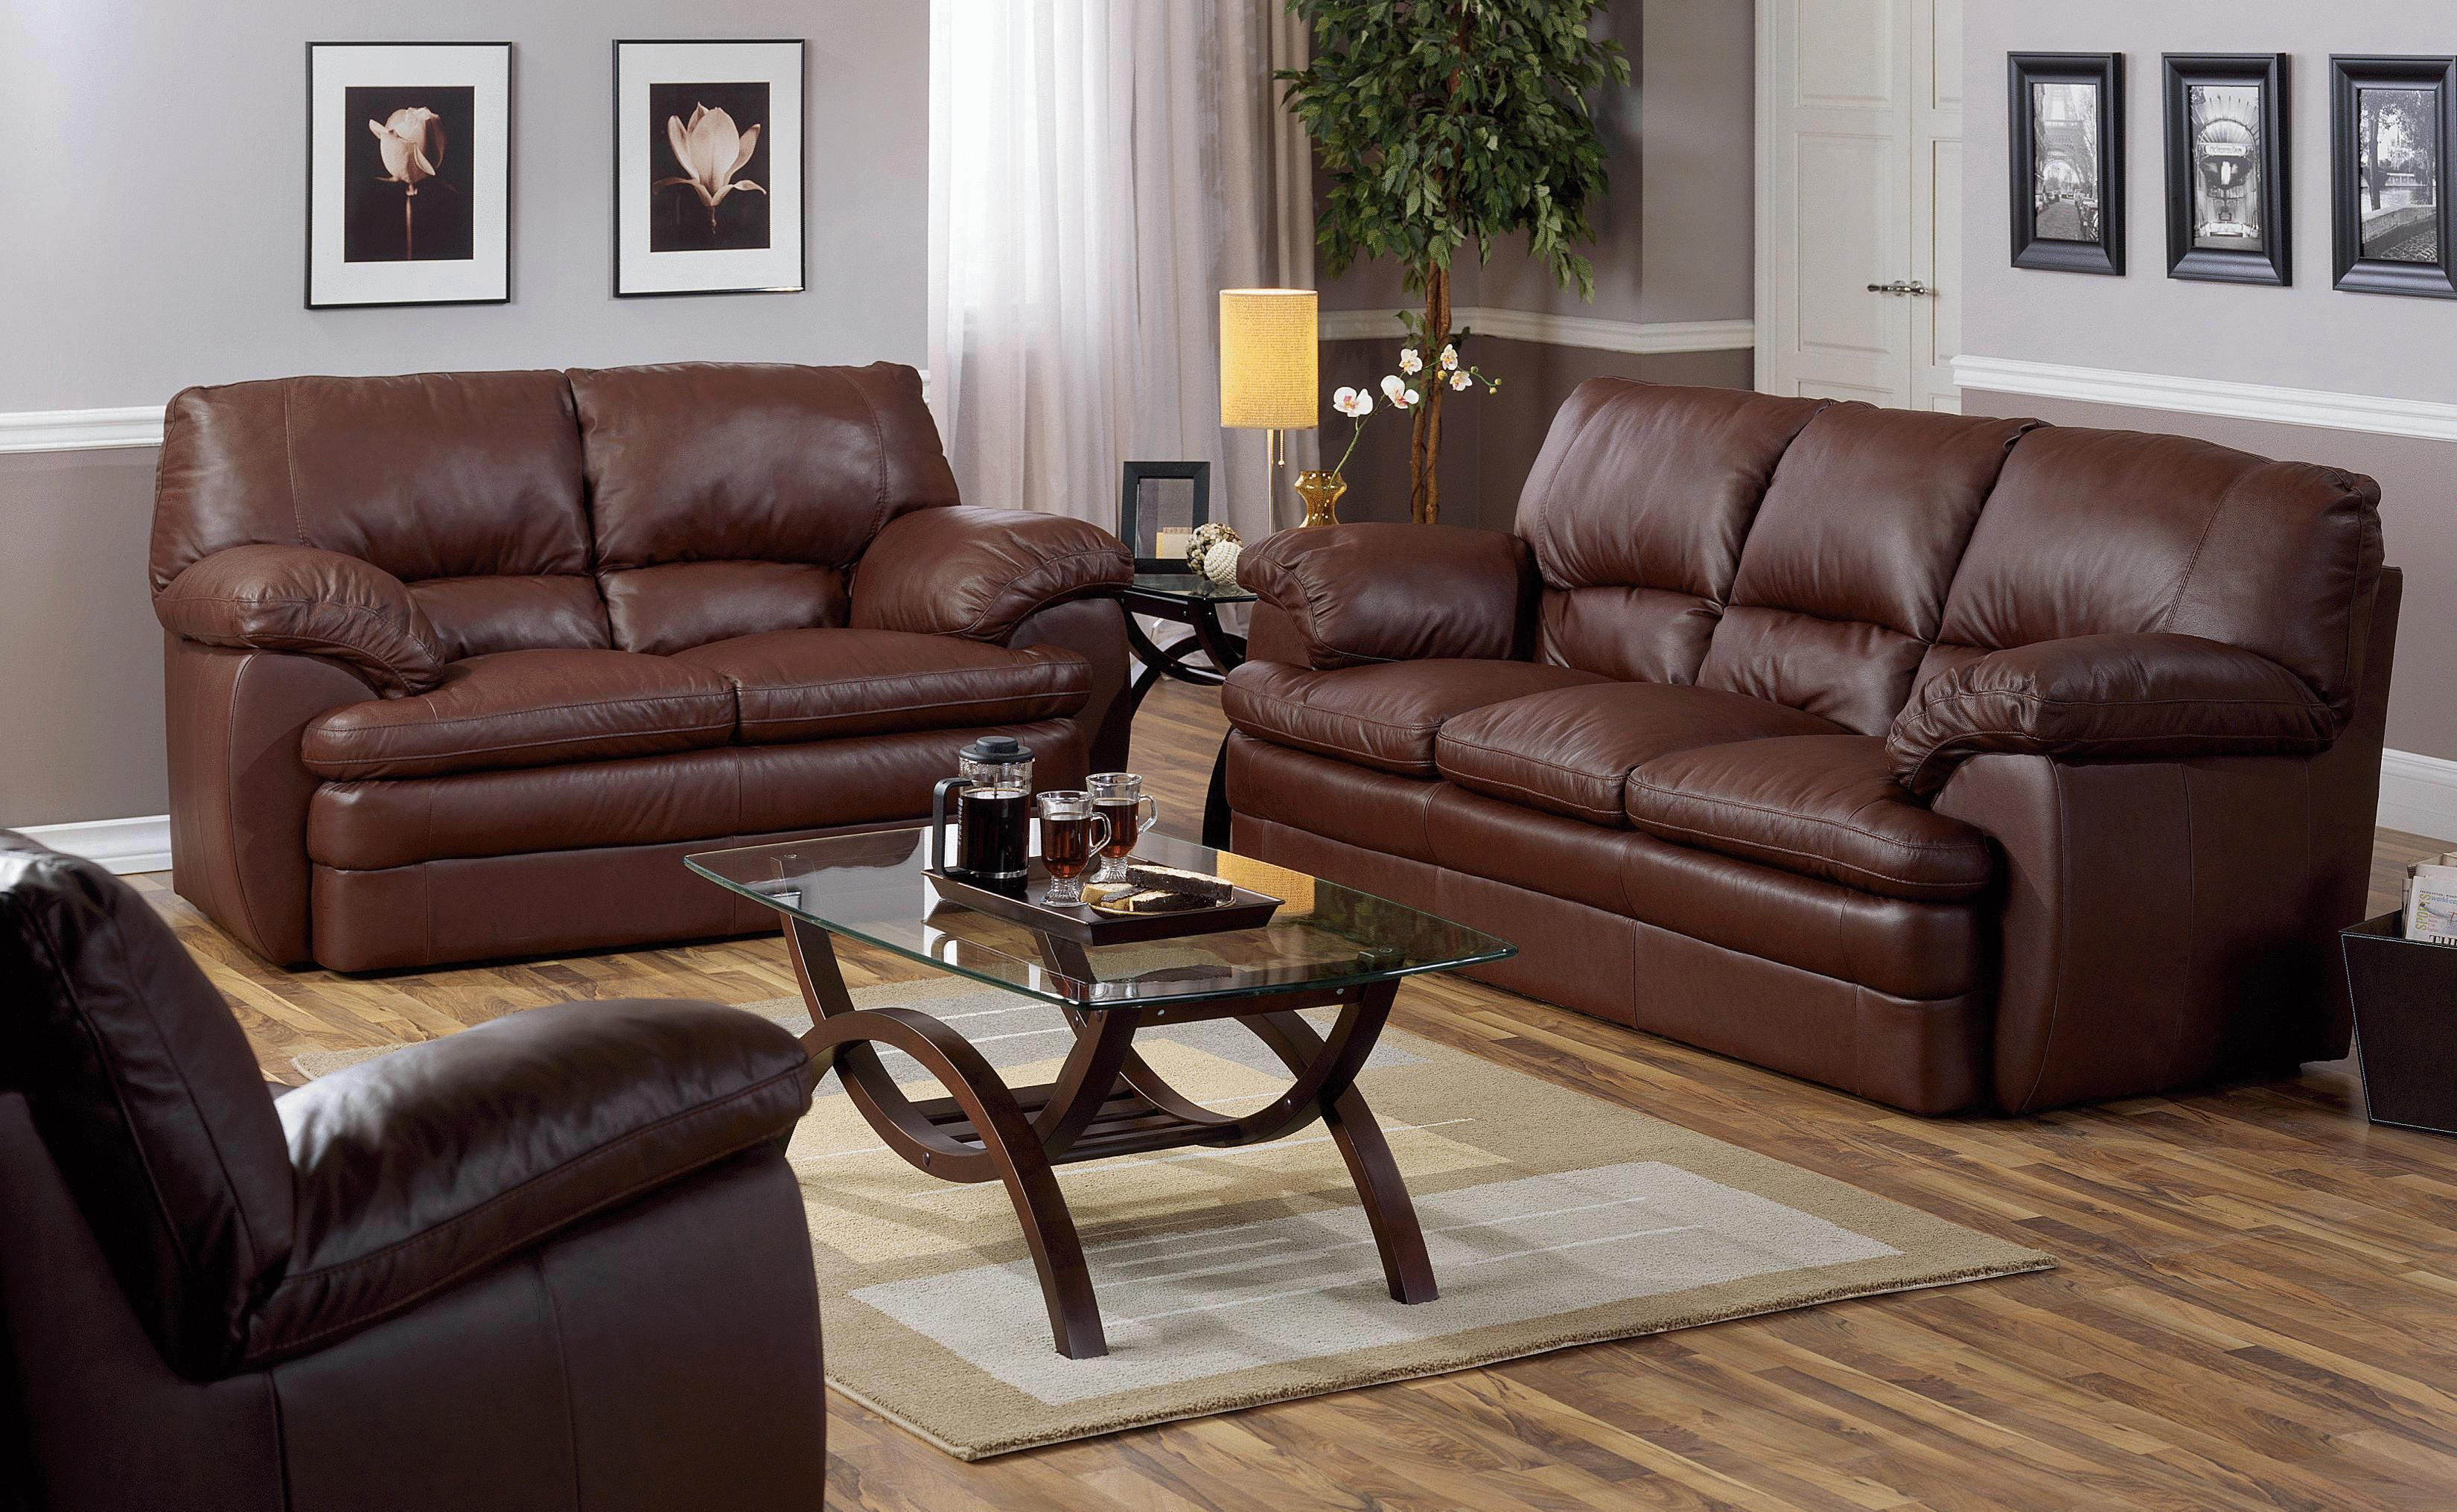 MARCELLA PILLOW TOP SOFA BY PALLISER leather fortable